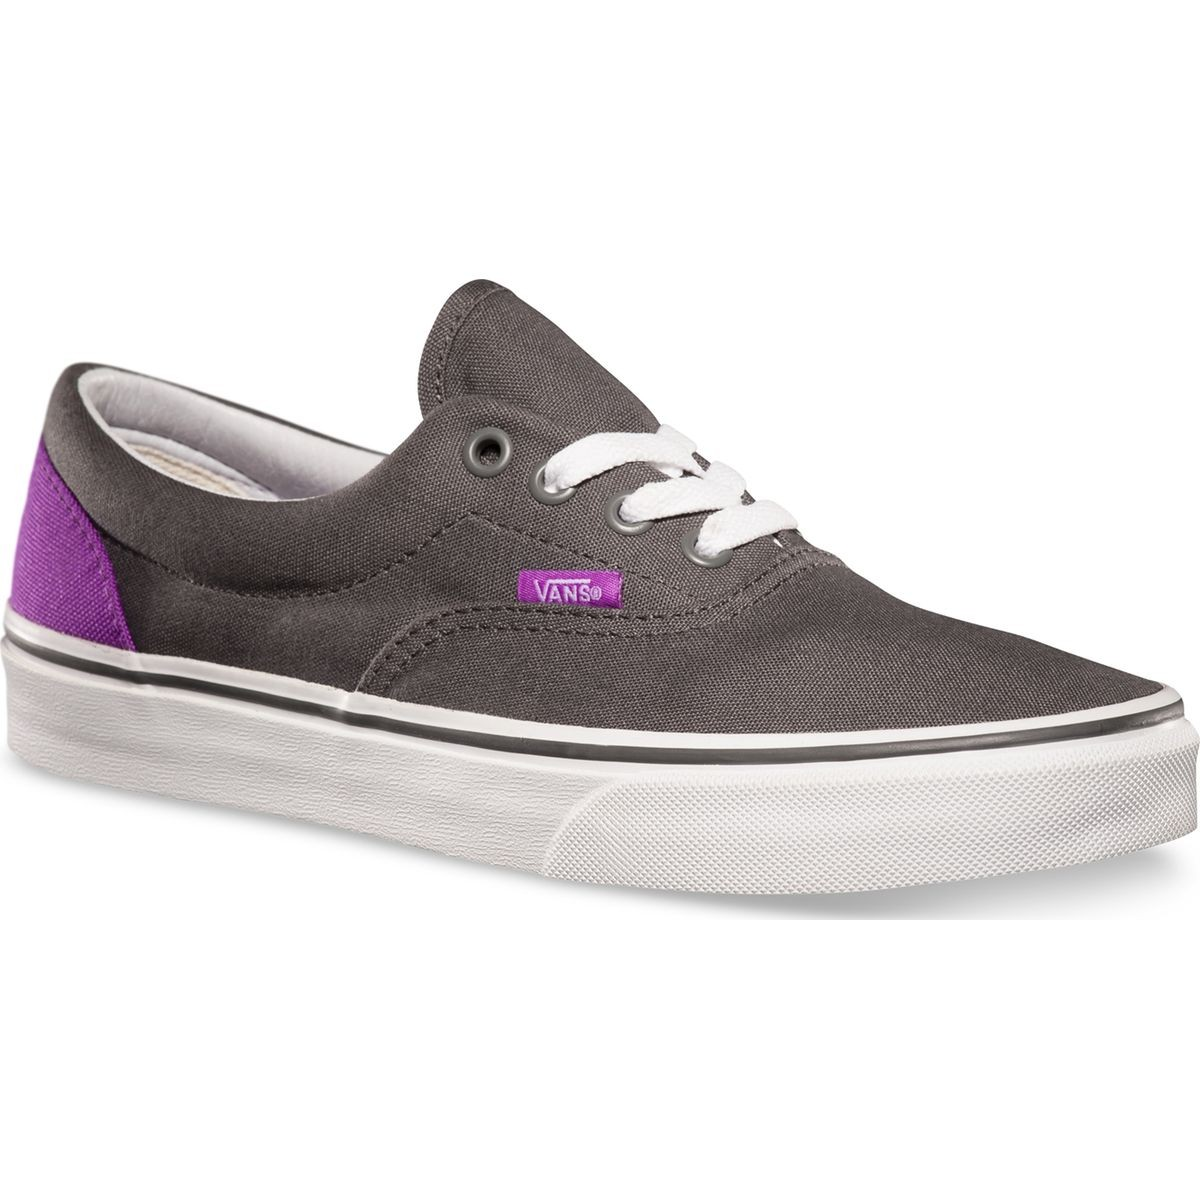 Vans ERA Heel Pop Shoes - Pewter/Neon Purple - 4.5